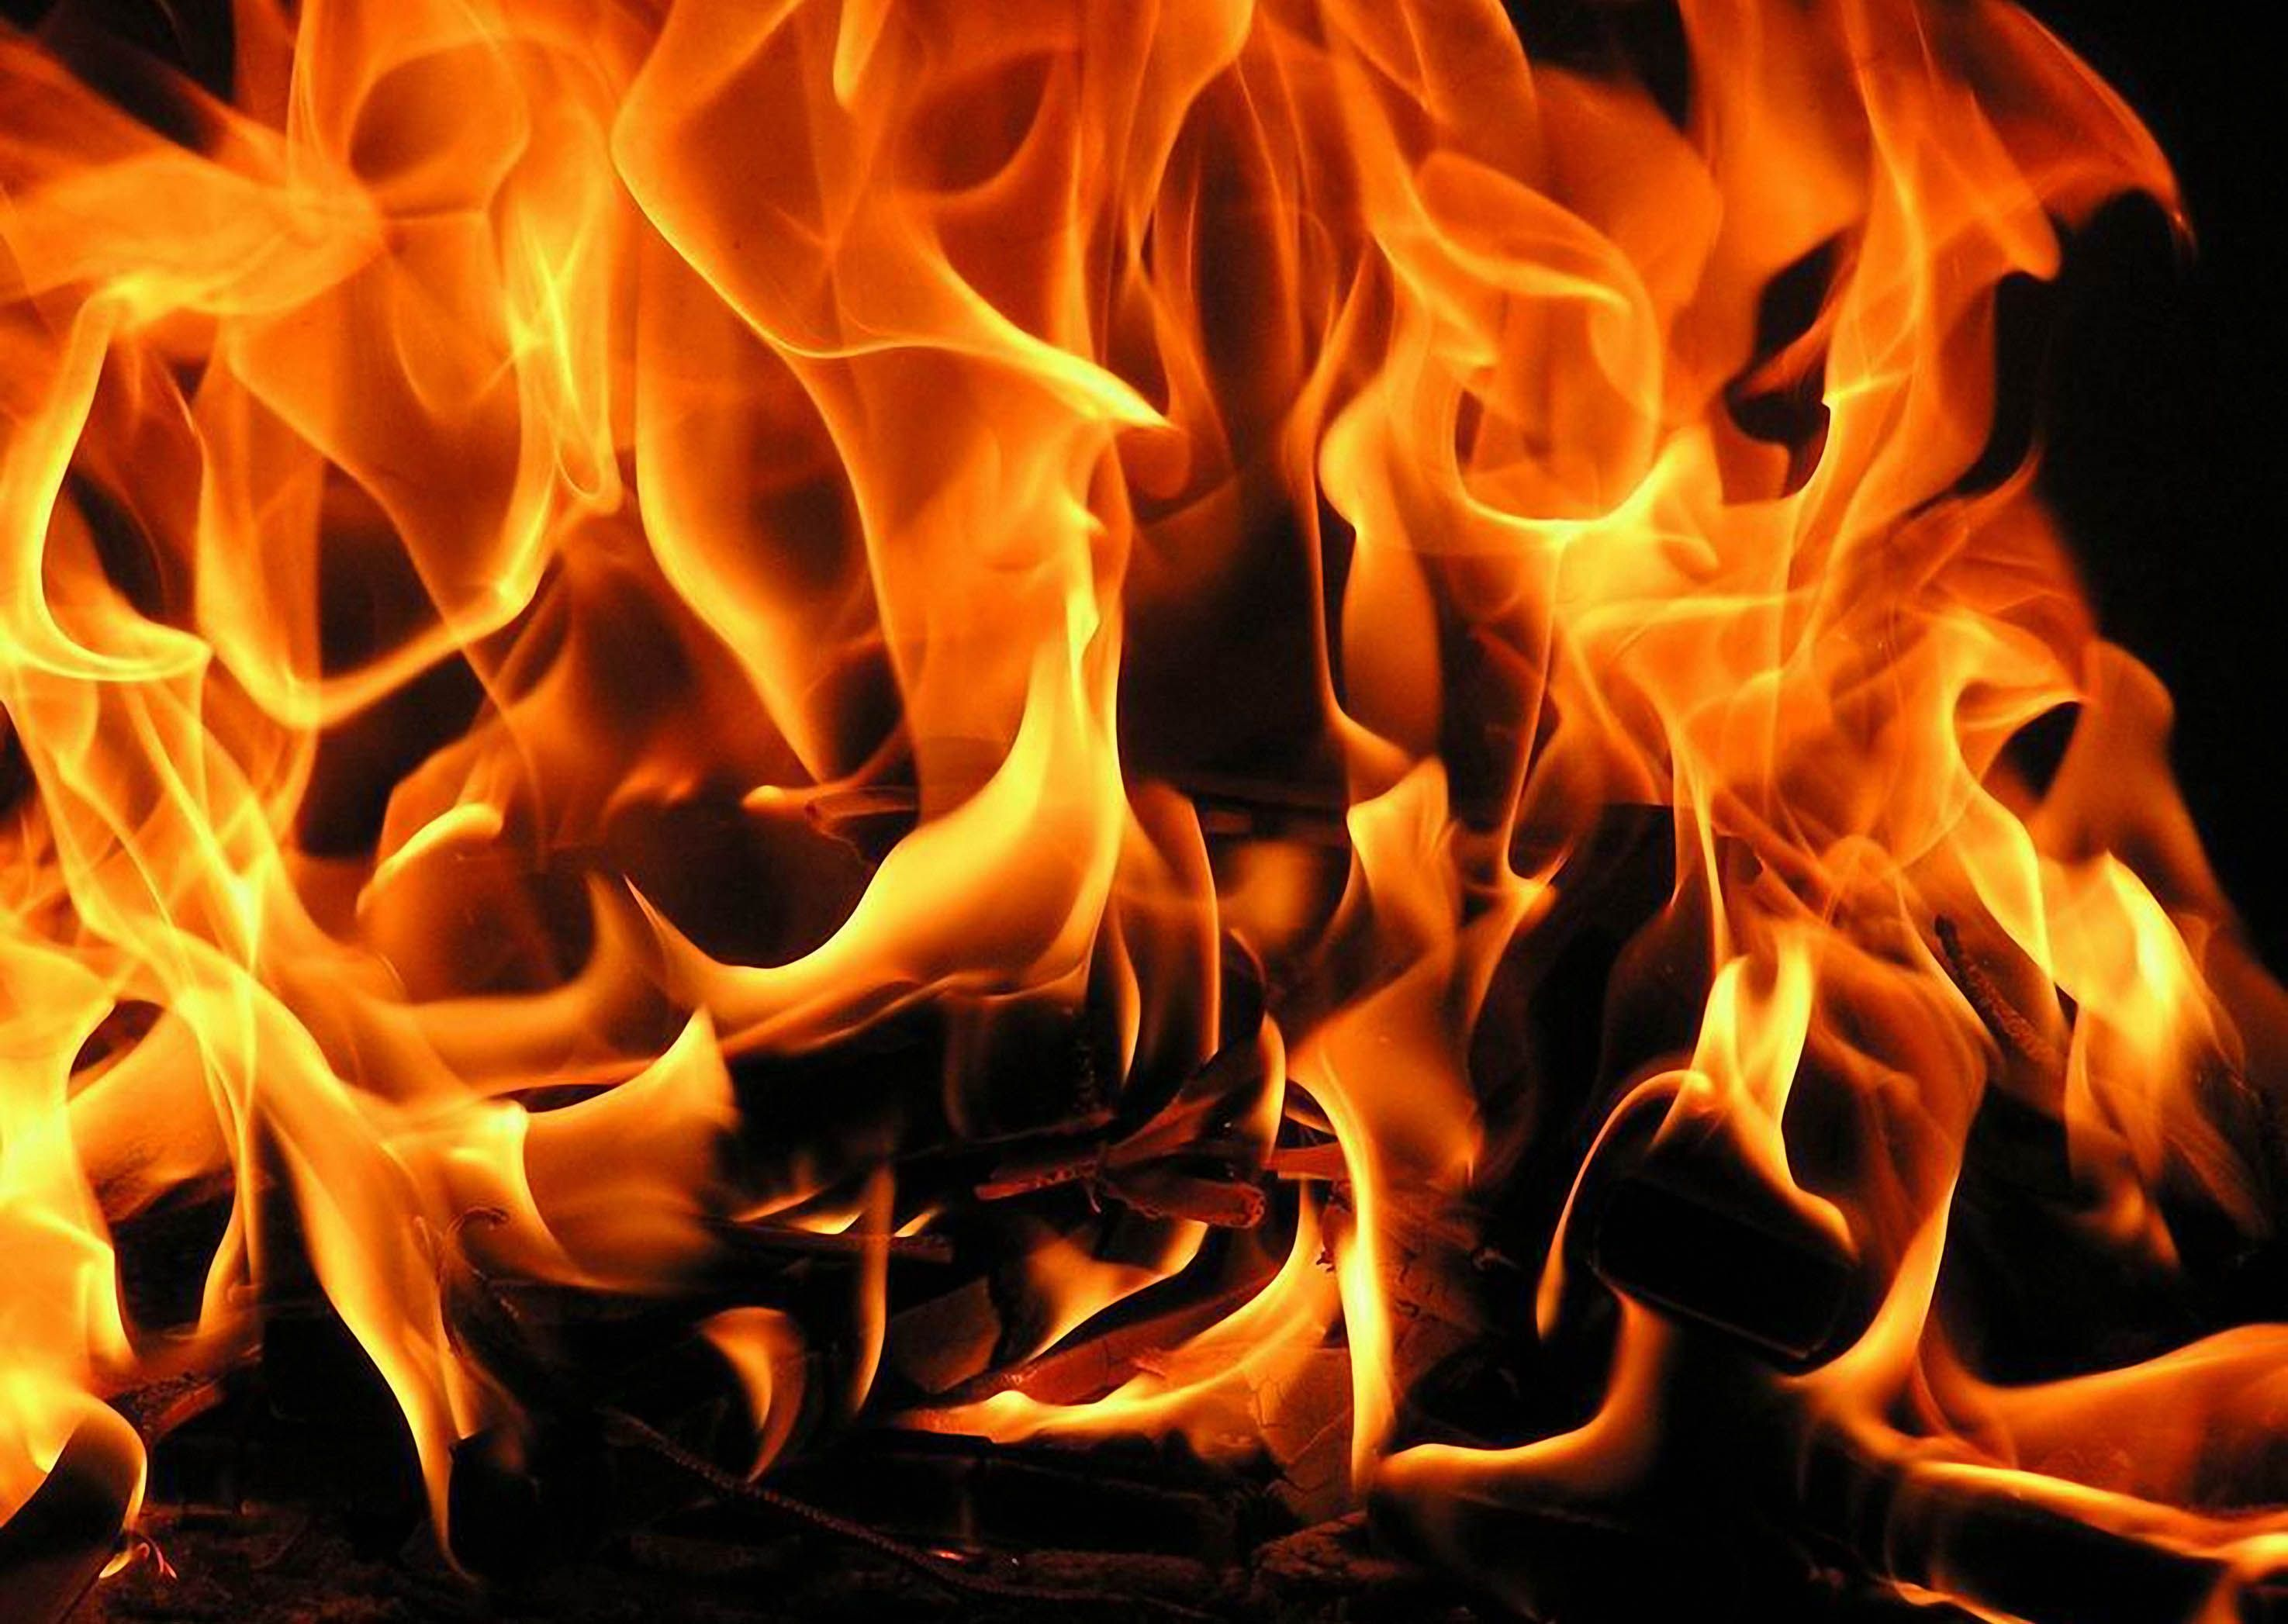 Flames Backgrounds - Wallpaper Cave